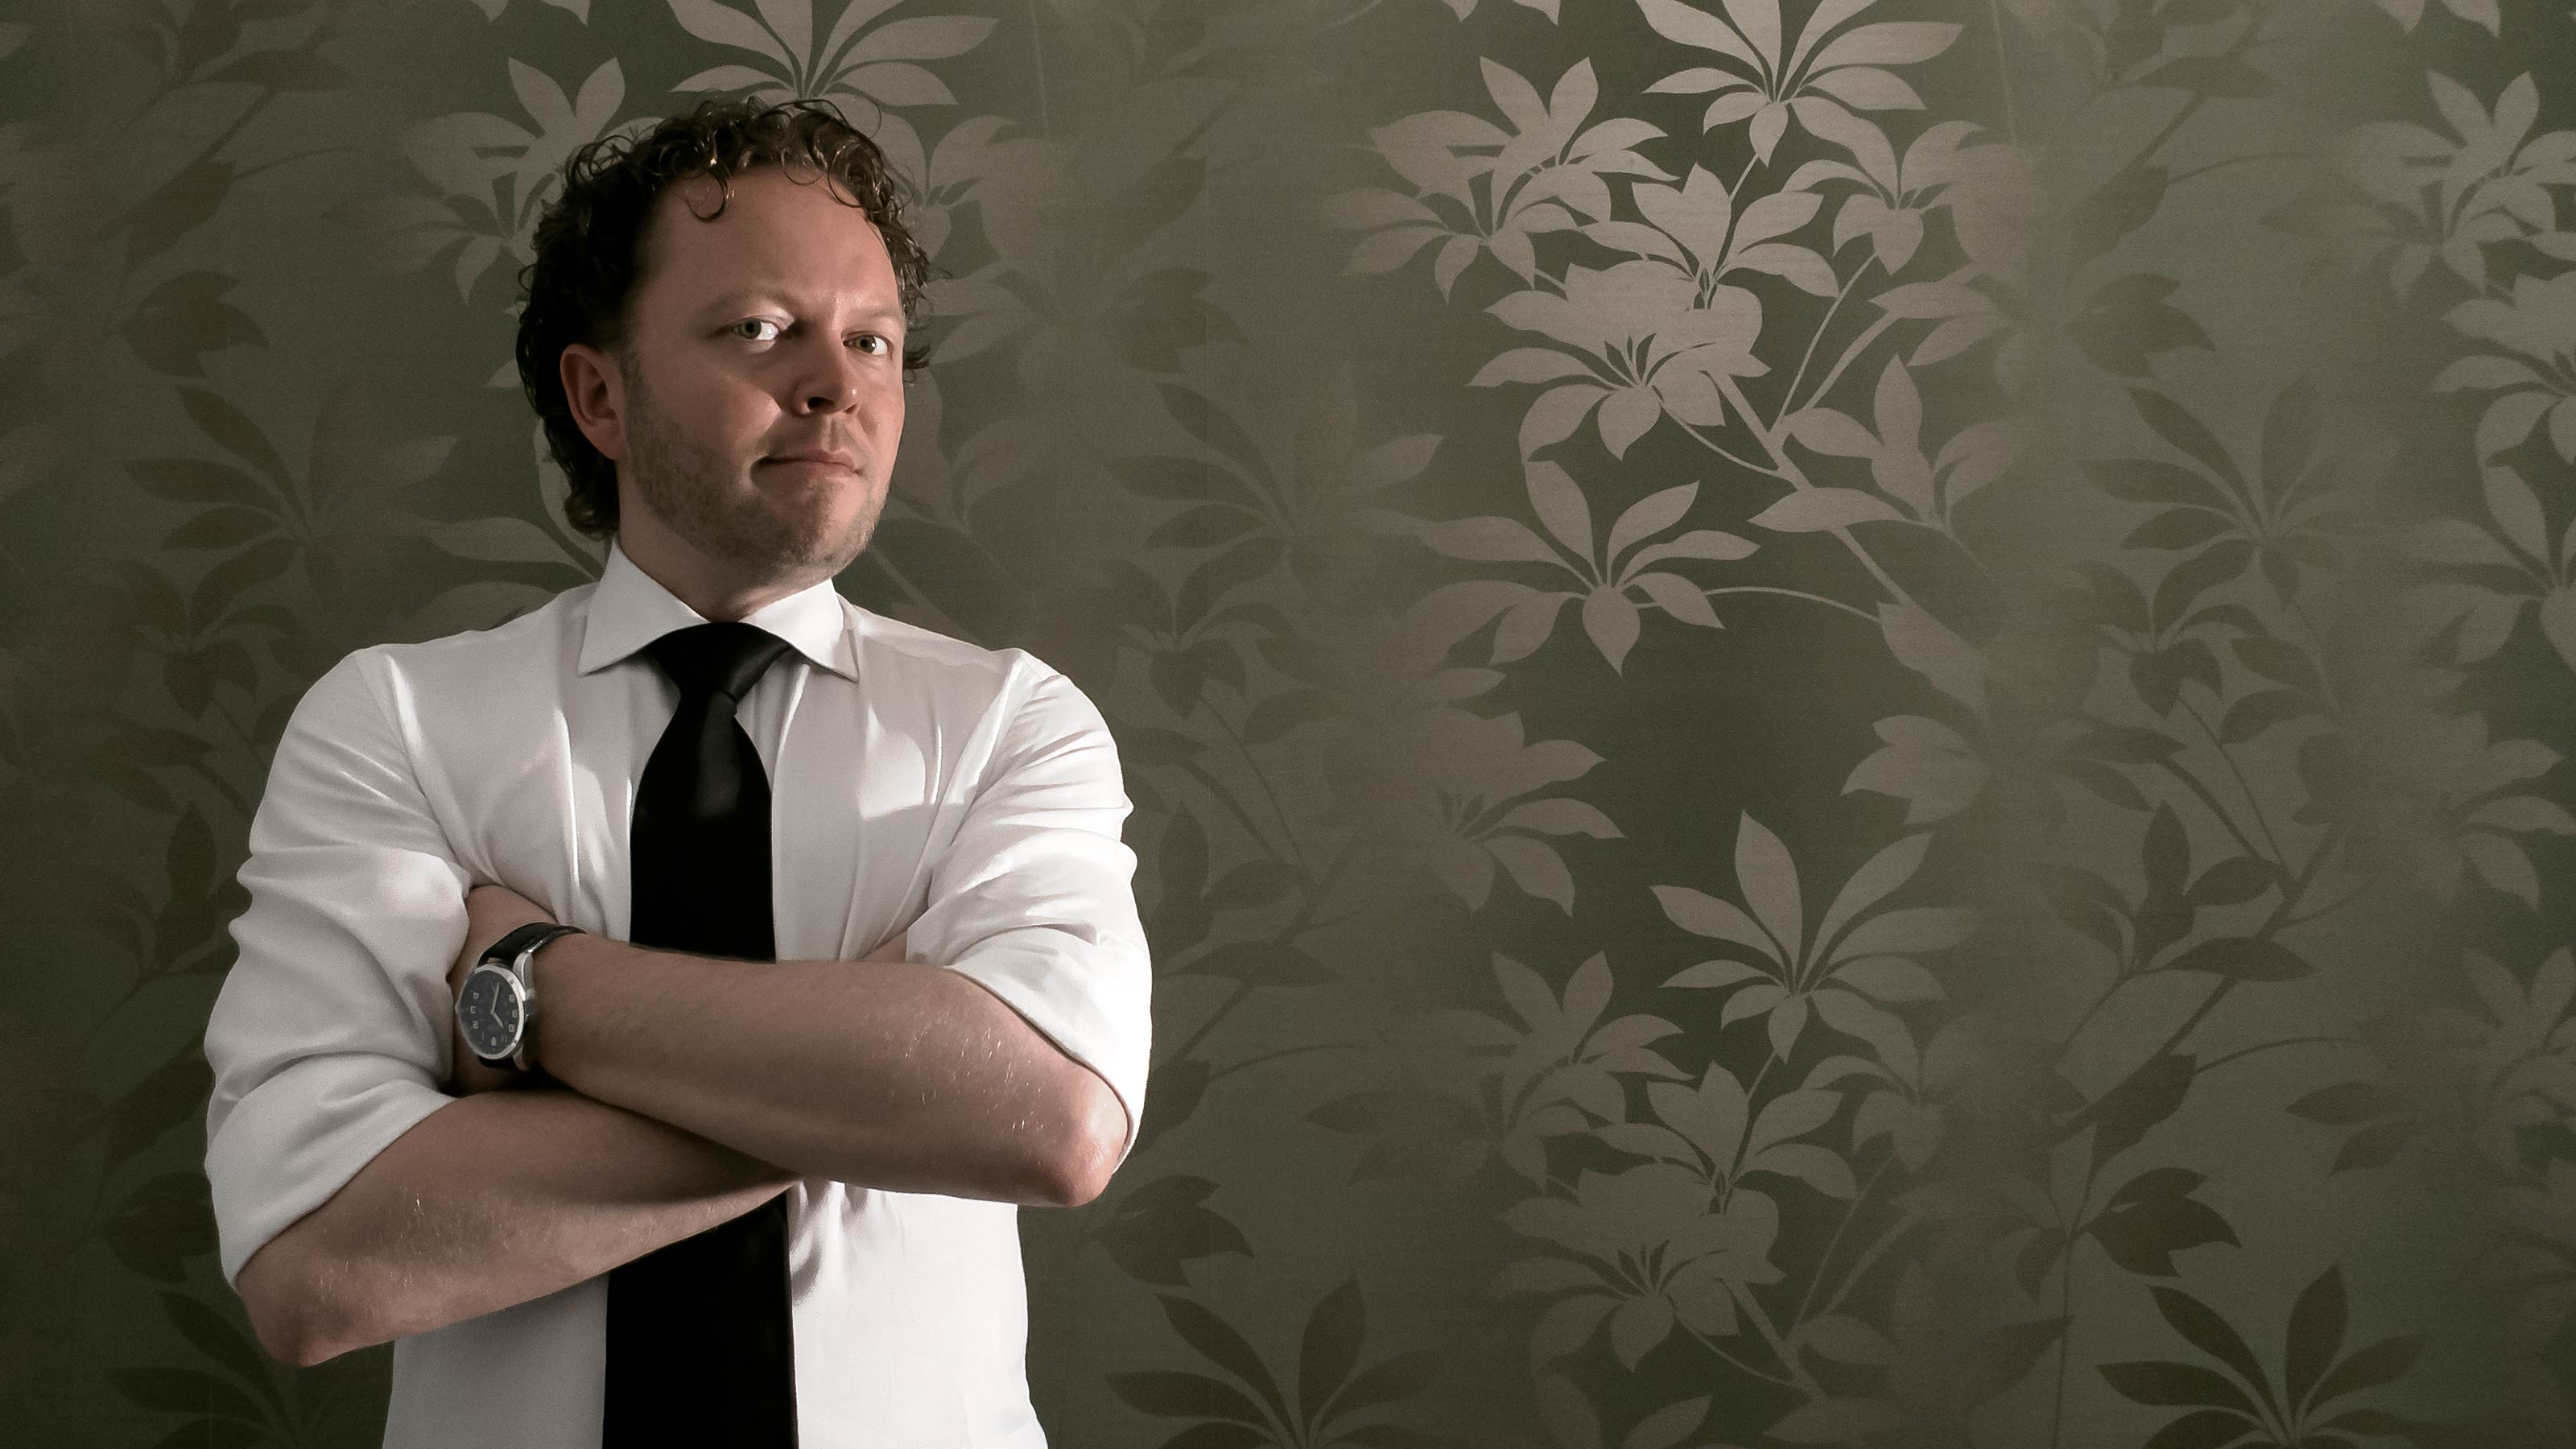 Reinier Blonk at the design studio in Amsterdam IJburg, wearing a white shirt and black tie, standing against a background of green-gold modernist flower wallpaper.